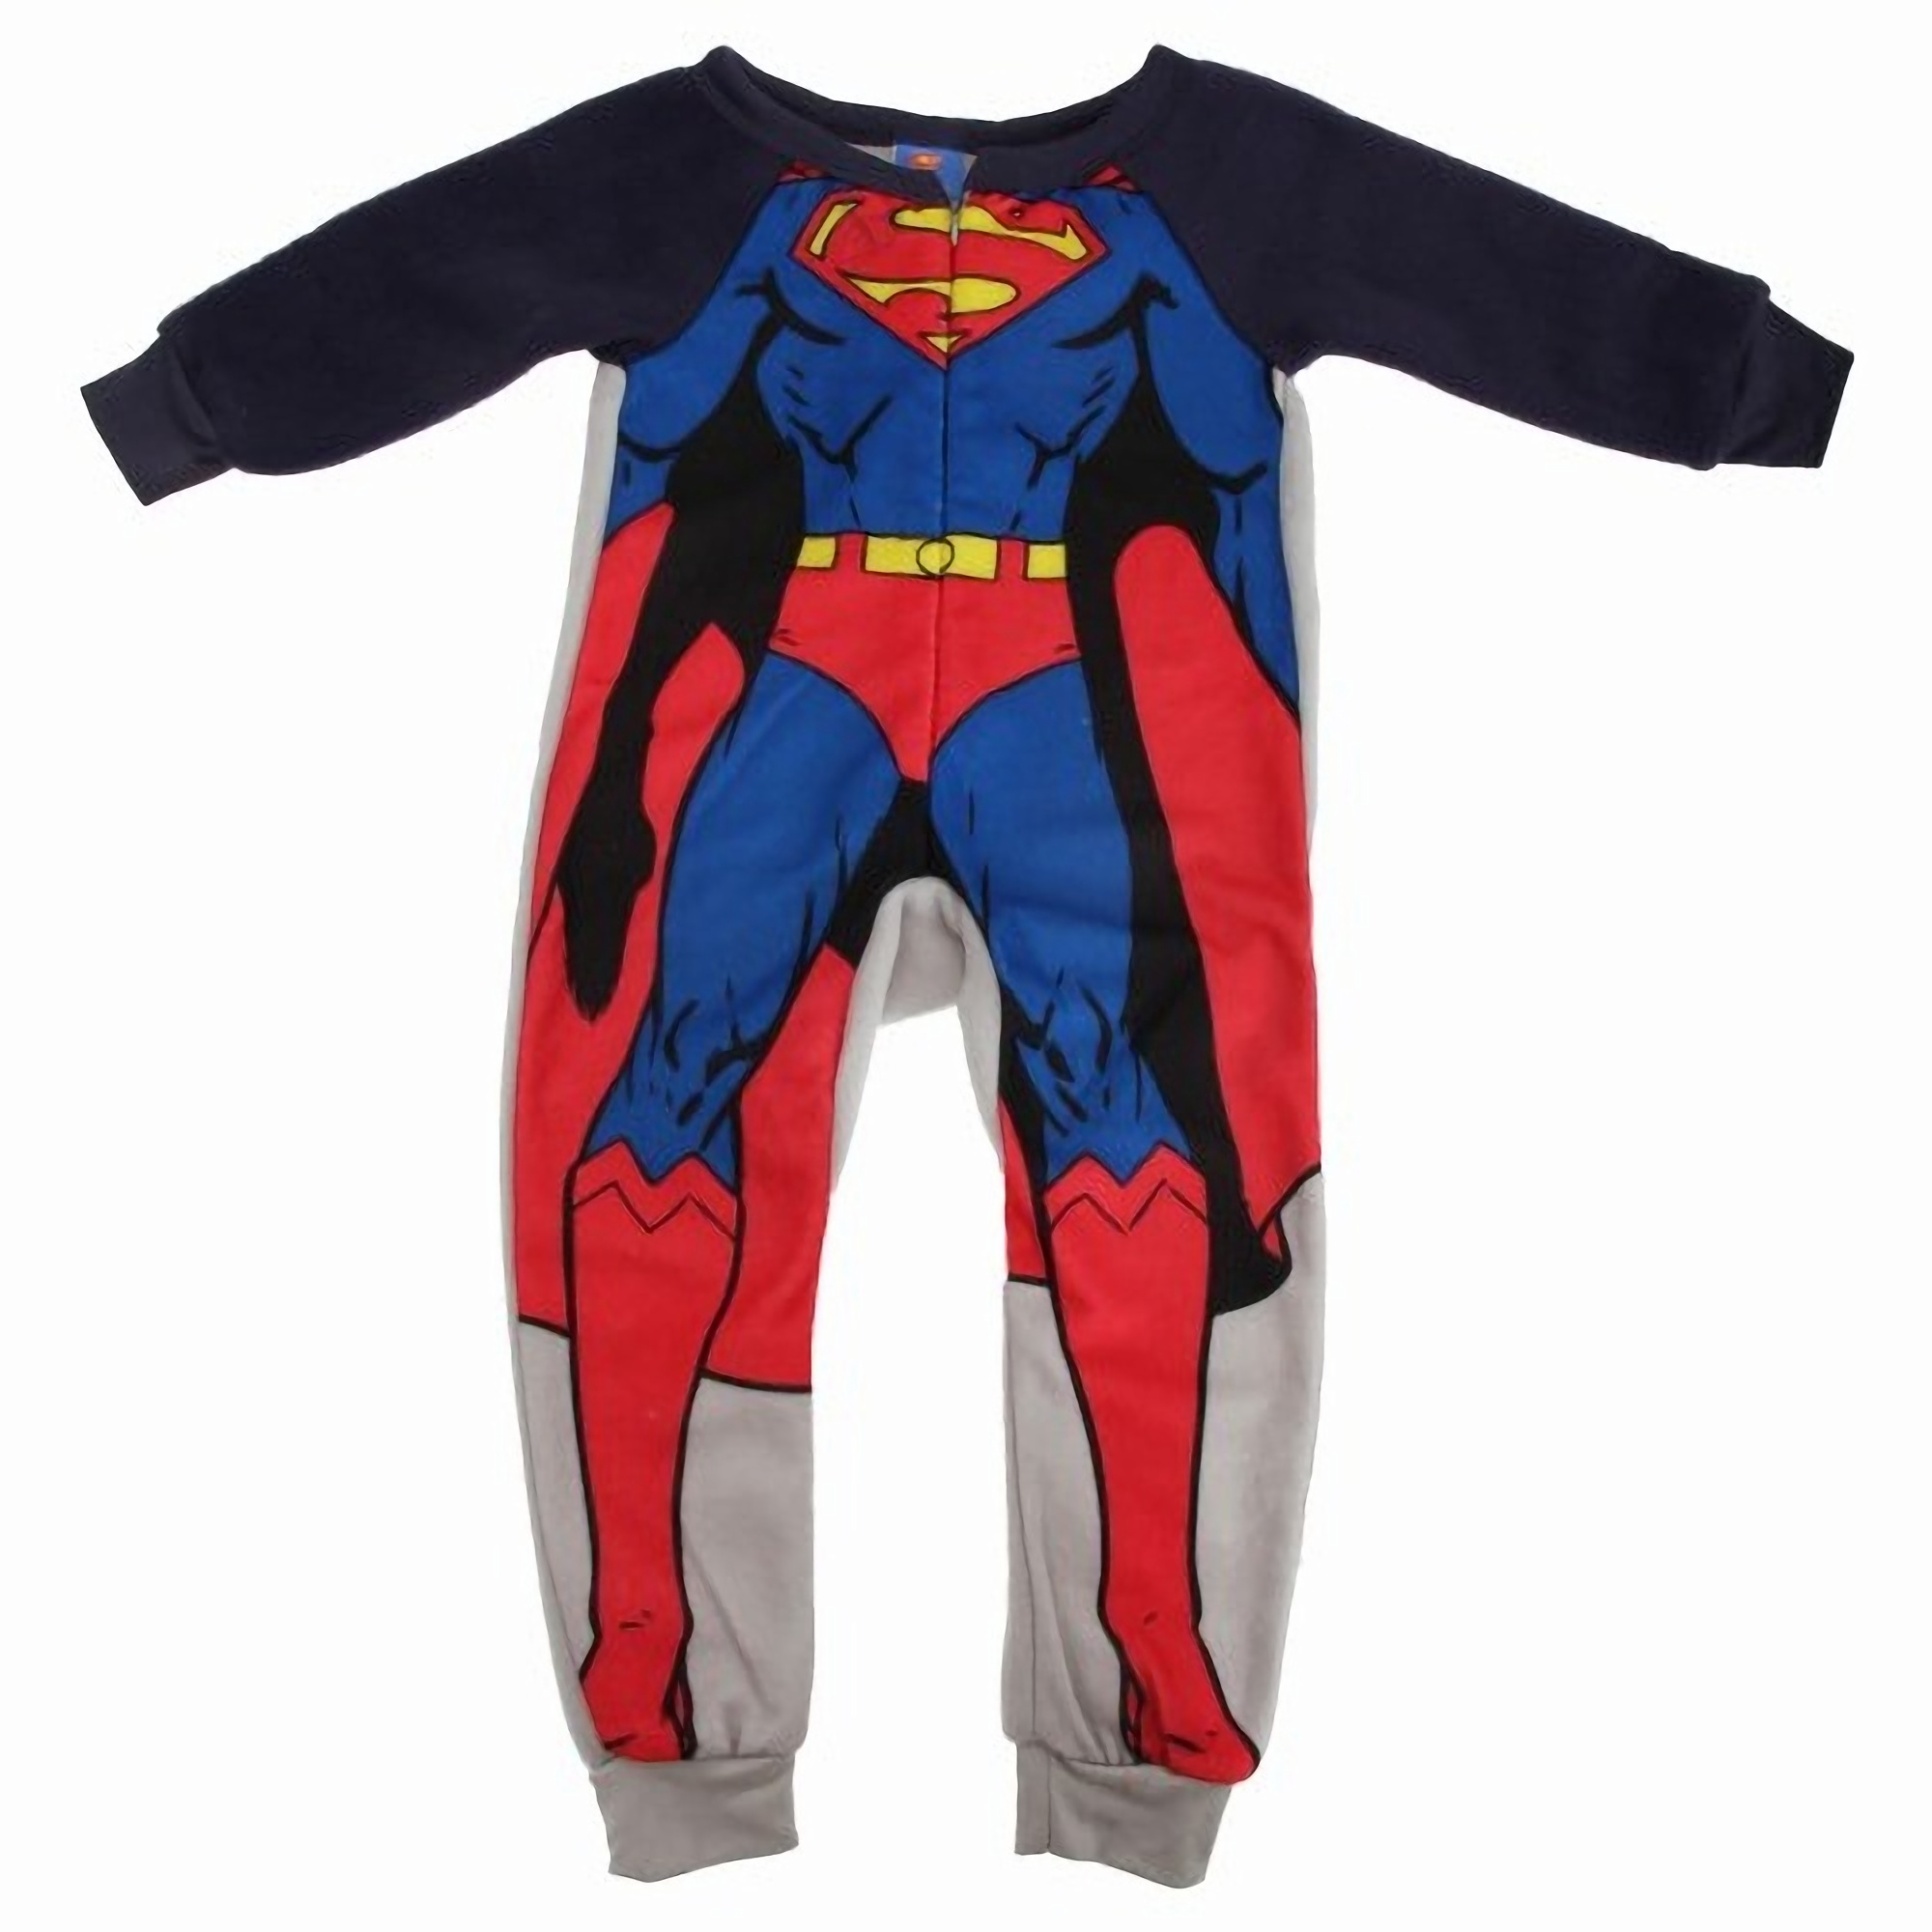 Superman Logos All Over Fleece Union Suit Pajama. This is the perfect union suit for the Superman fan in your life! The soft blue fleece is a classic Superman blue and has the Super Shield, along with the Superman block-style logo in an all-over print. The one piece pajama has a half-zip and slightly elastic ankles and wrists to prevent ride-up..